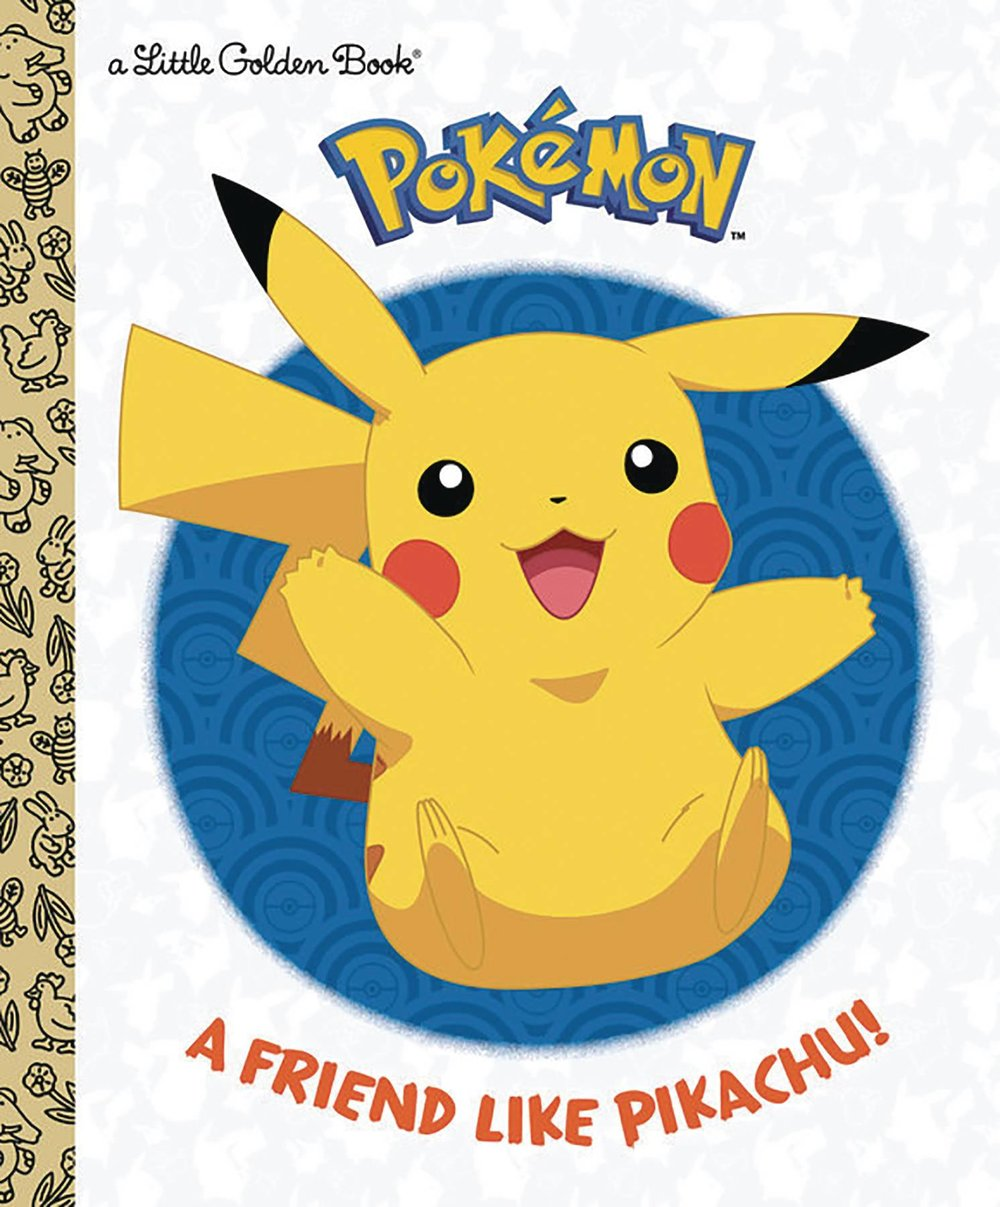 A FRIEND LIKE PIKACHU POKEMON LITTLE GOLDEN BOOK.jpg